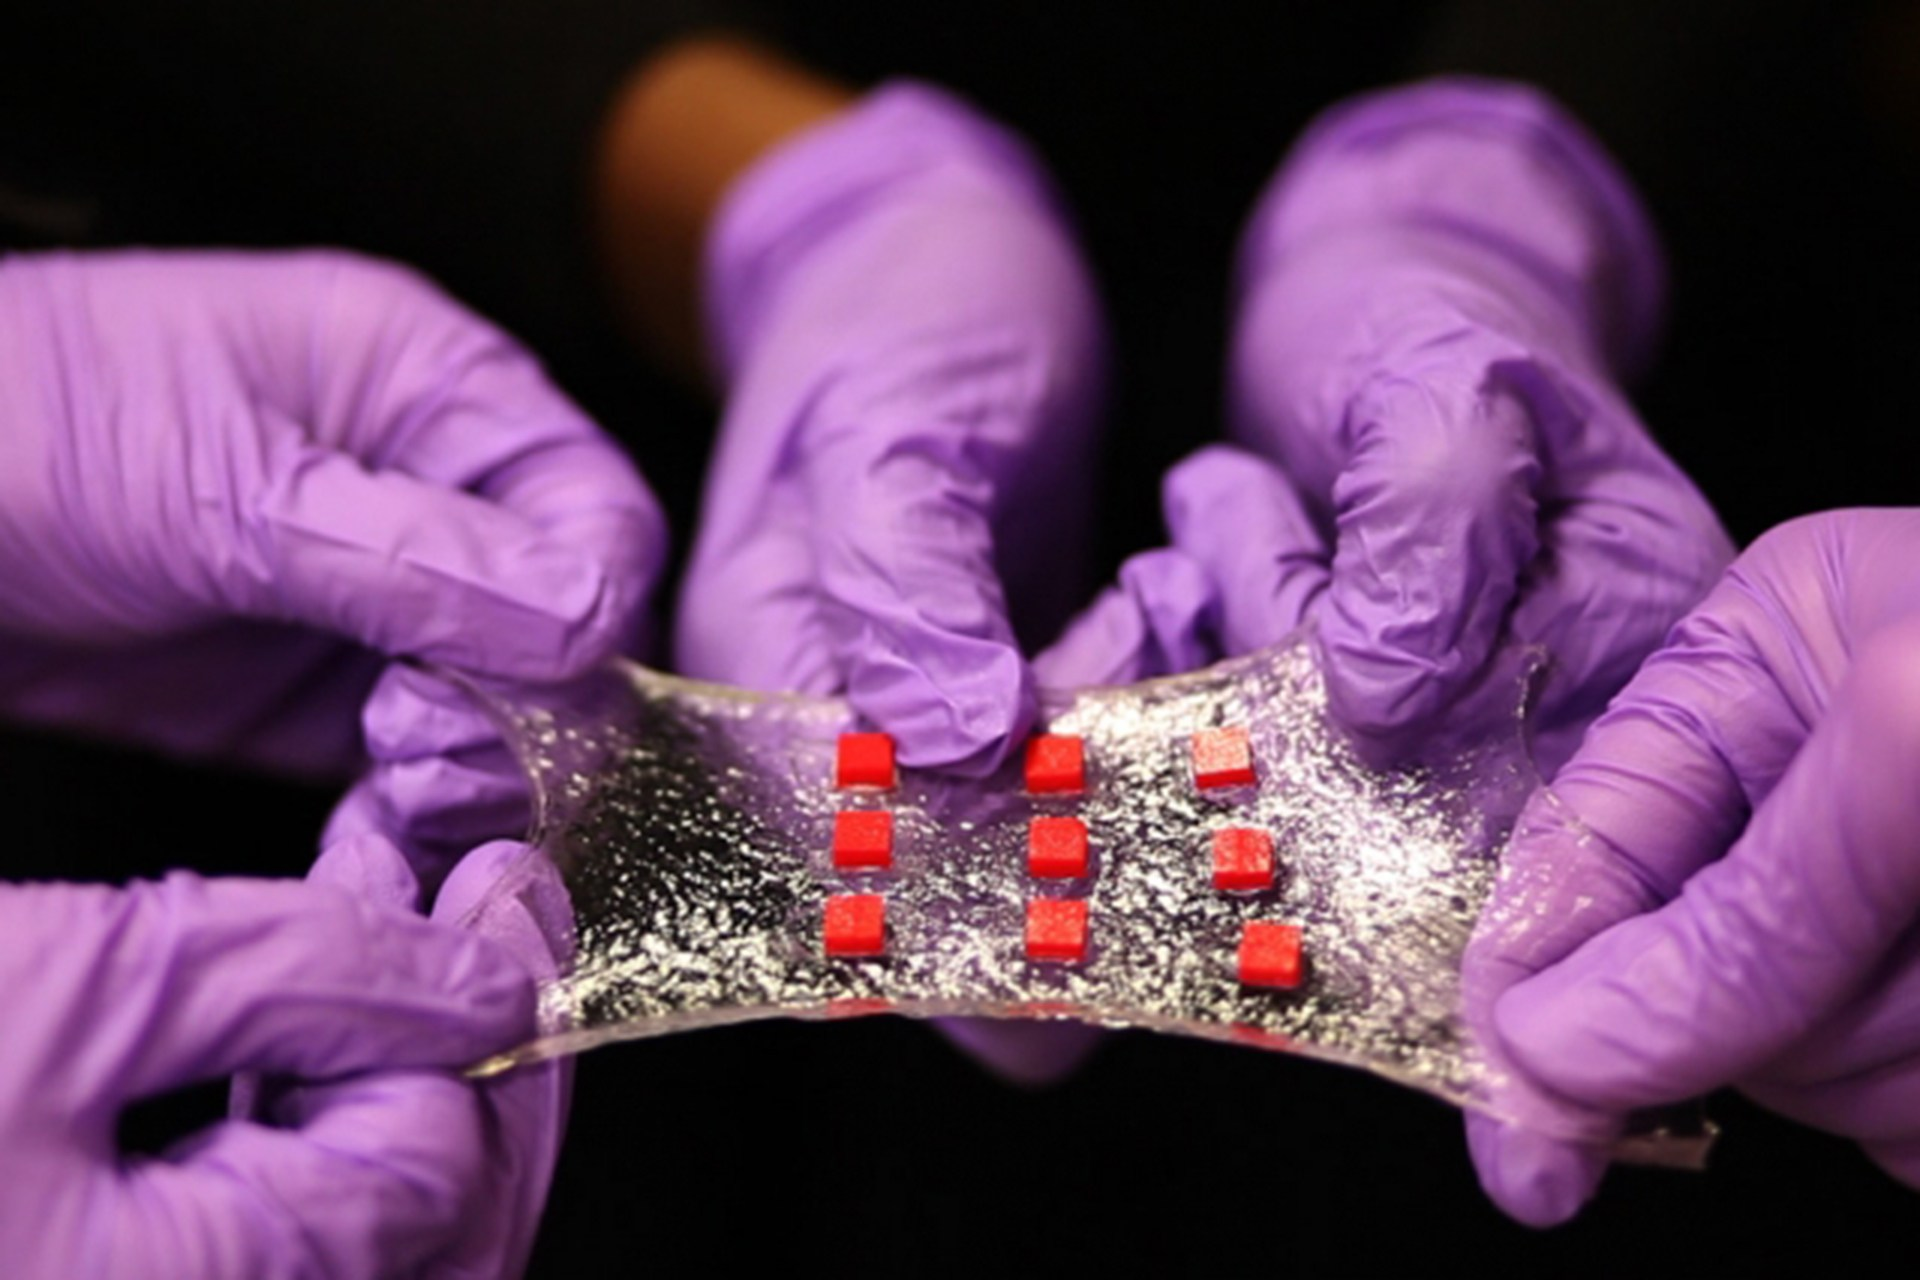 Have Scientists at MIT Successfully Designed the Band Aid of the Future?